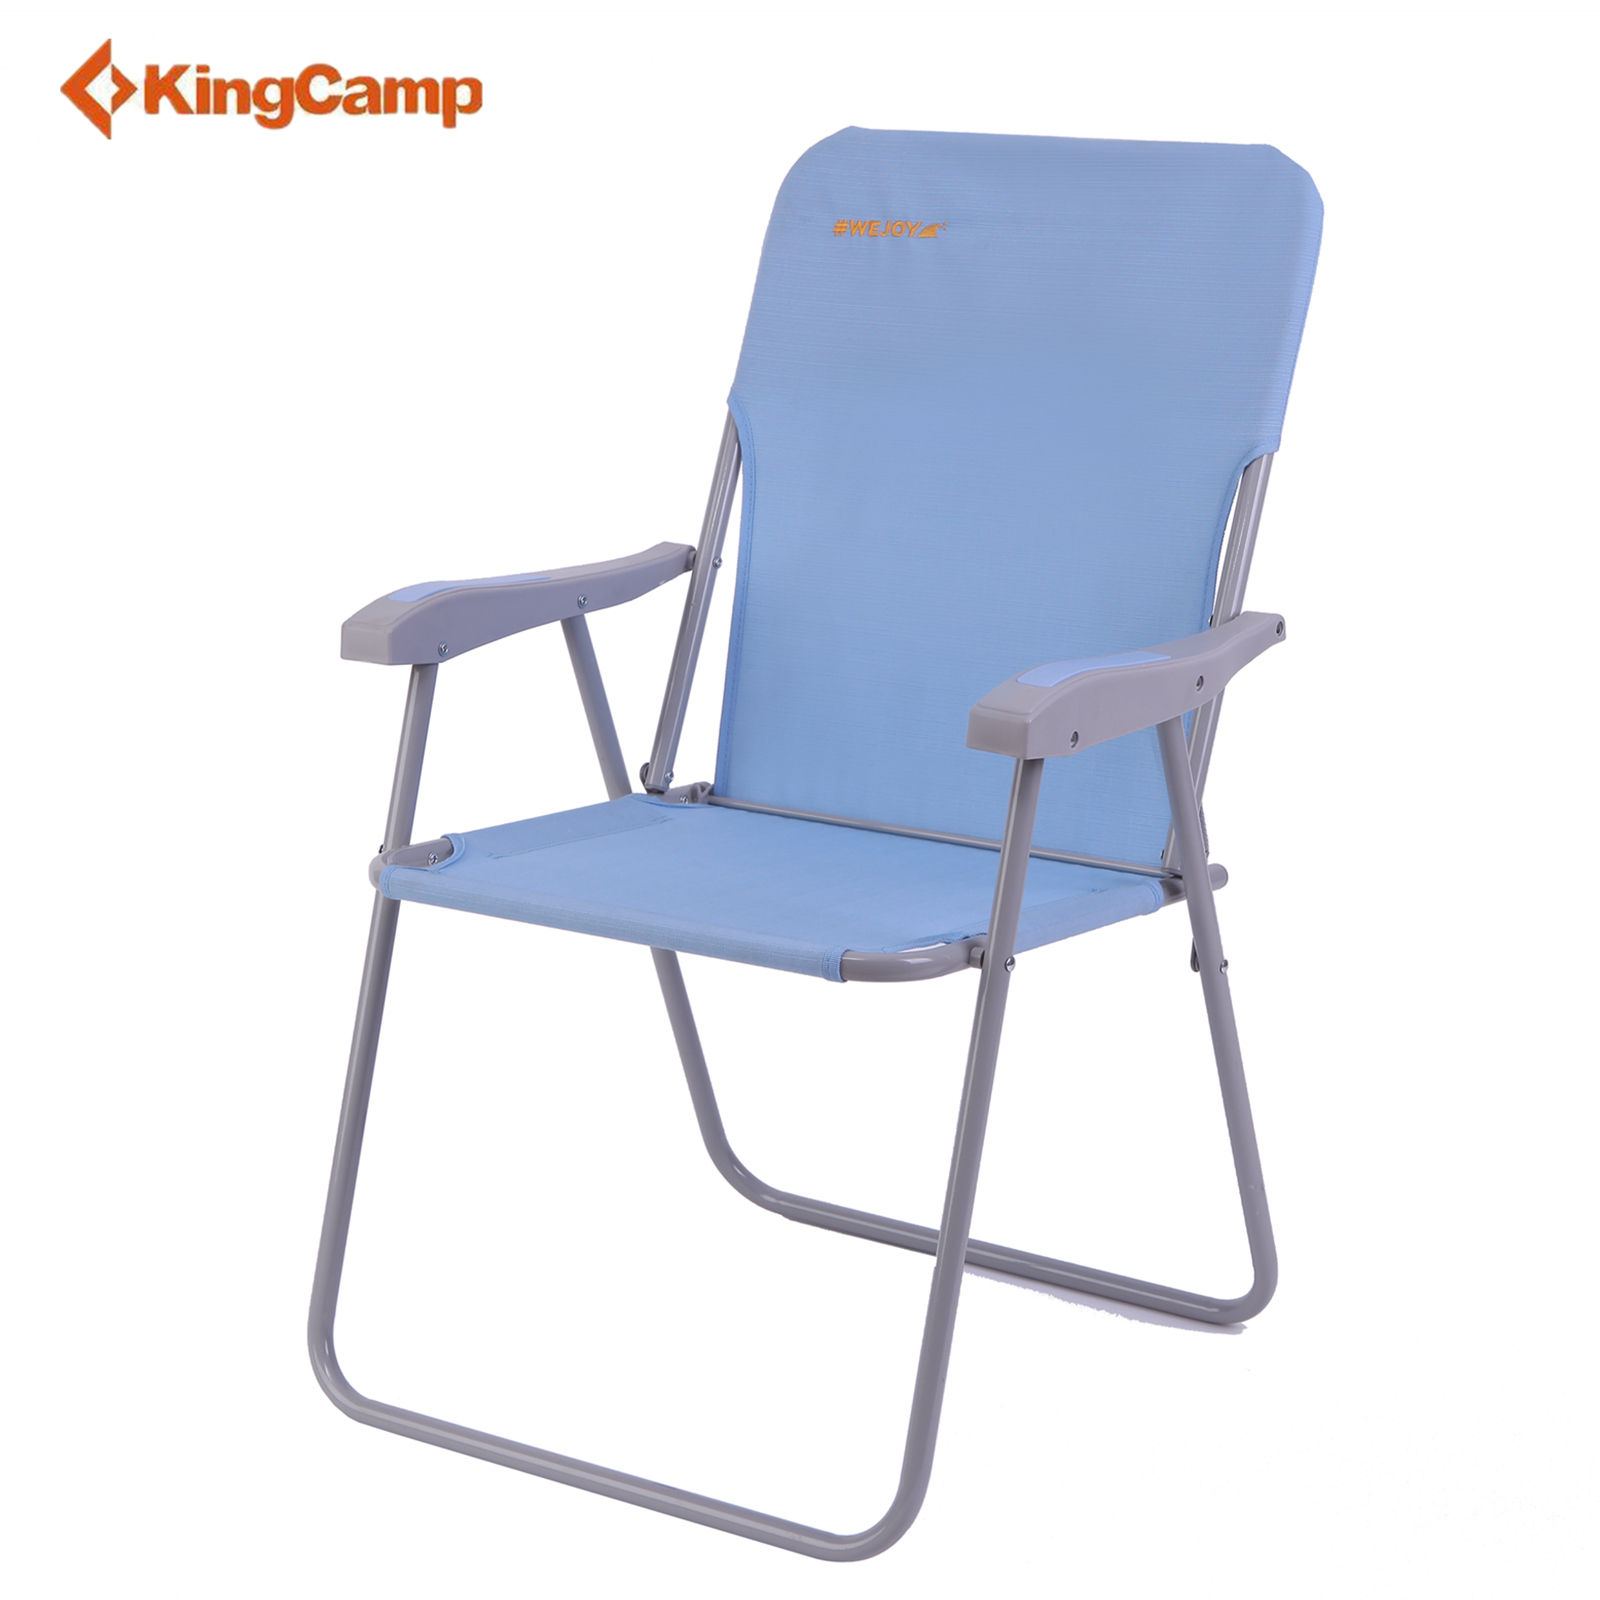 Details about WeJoy Lightweight Portable Folding Beach Chair Blue Camping  Indoor Outdoor Fish